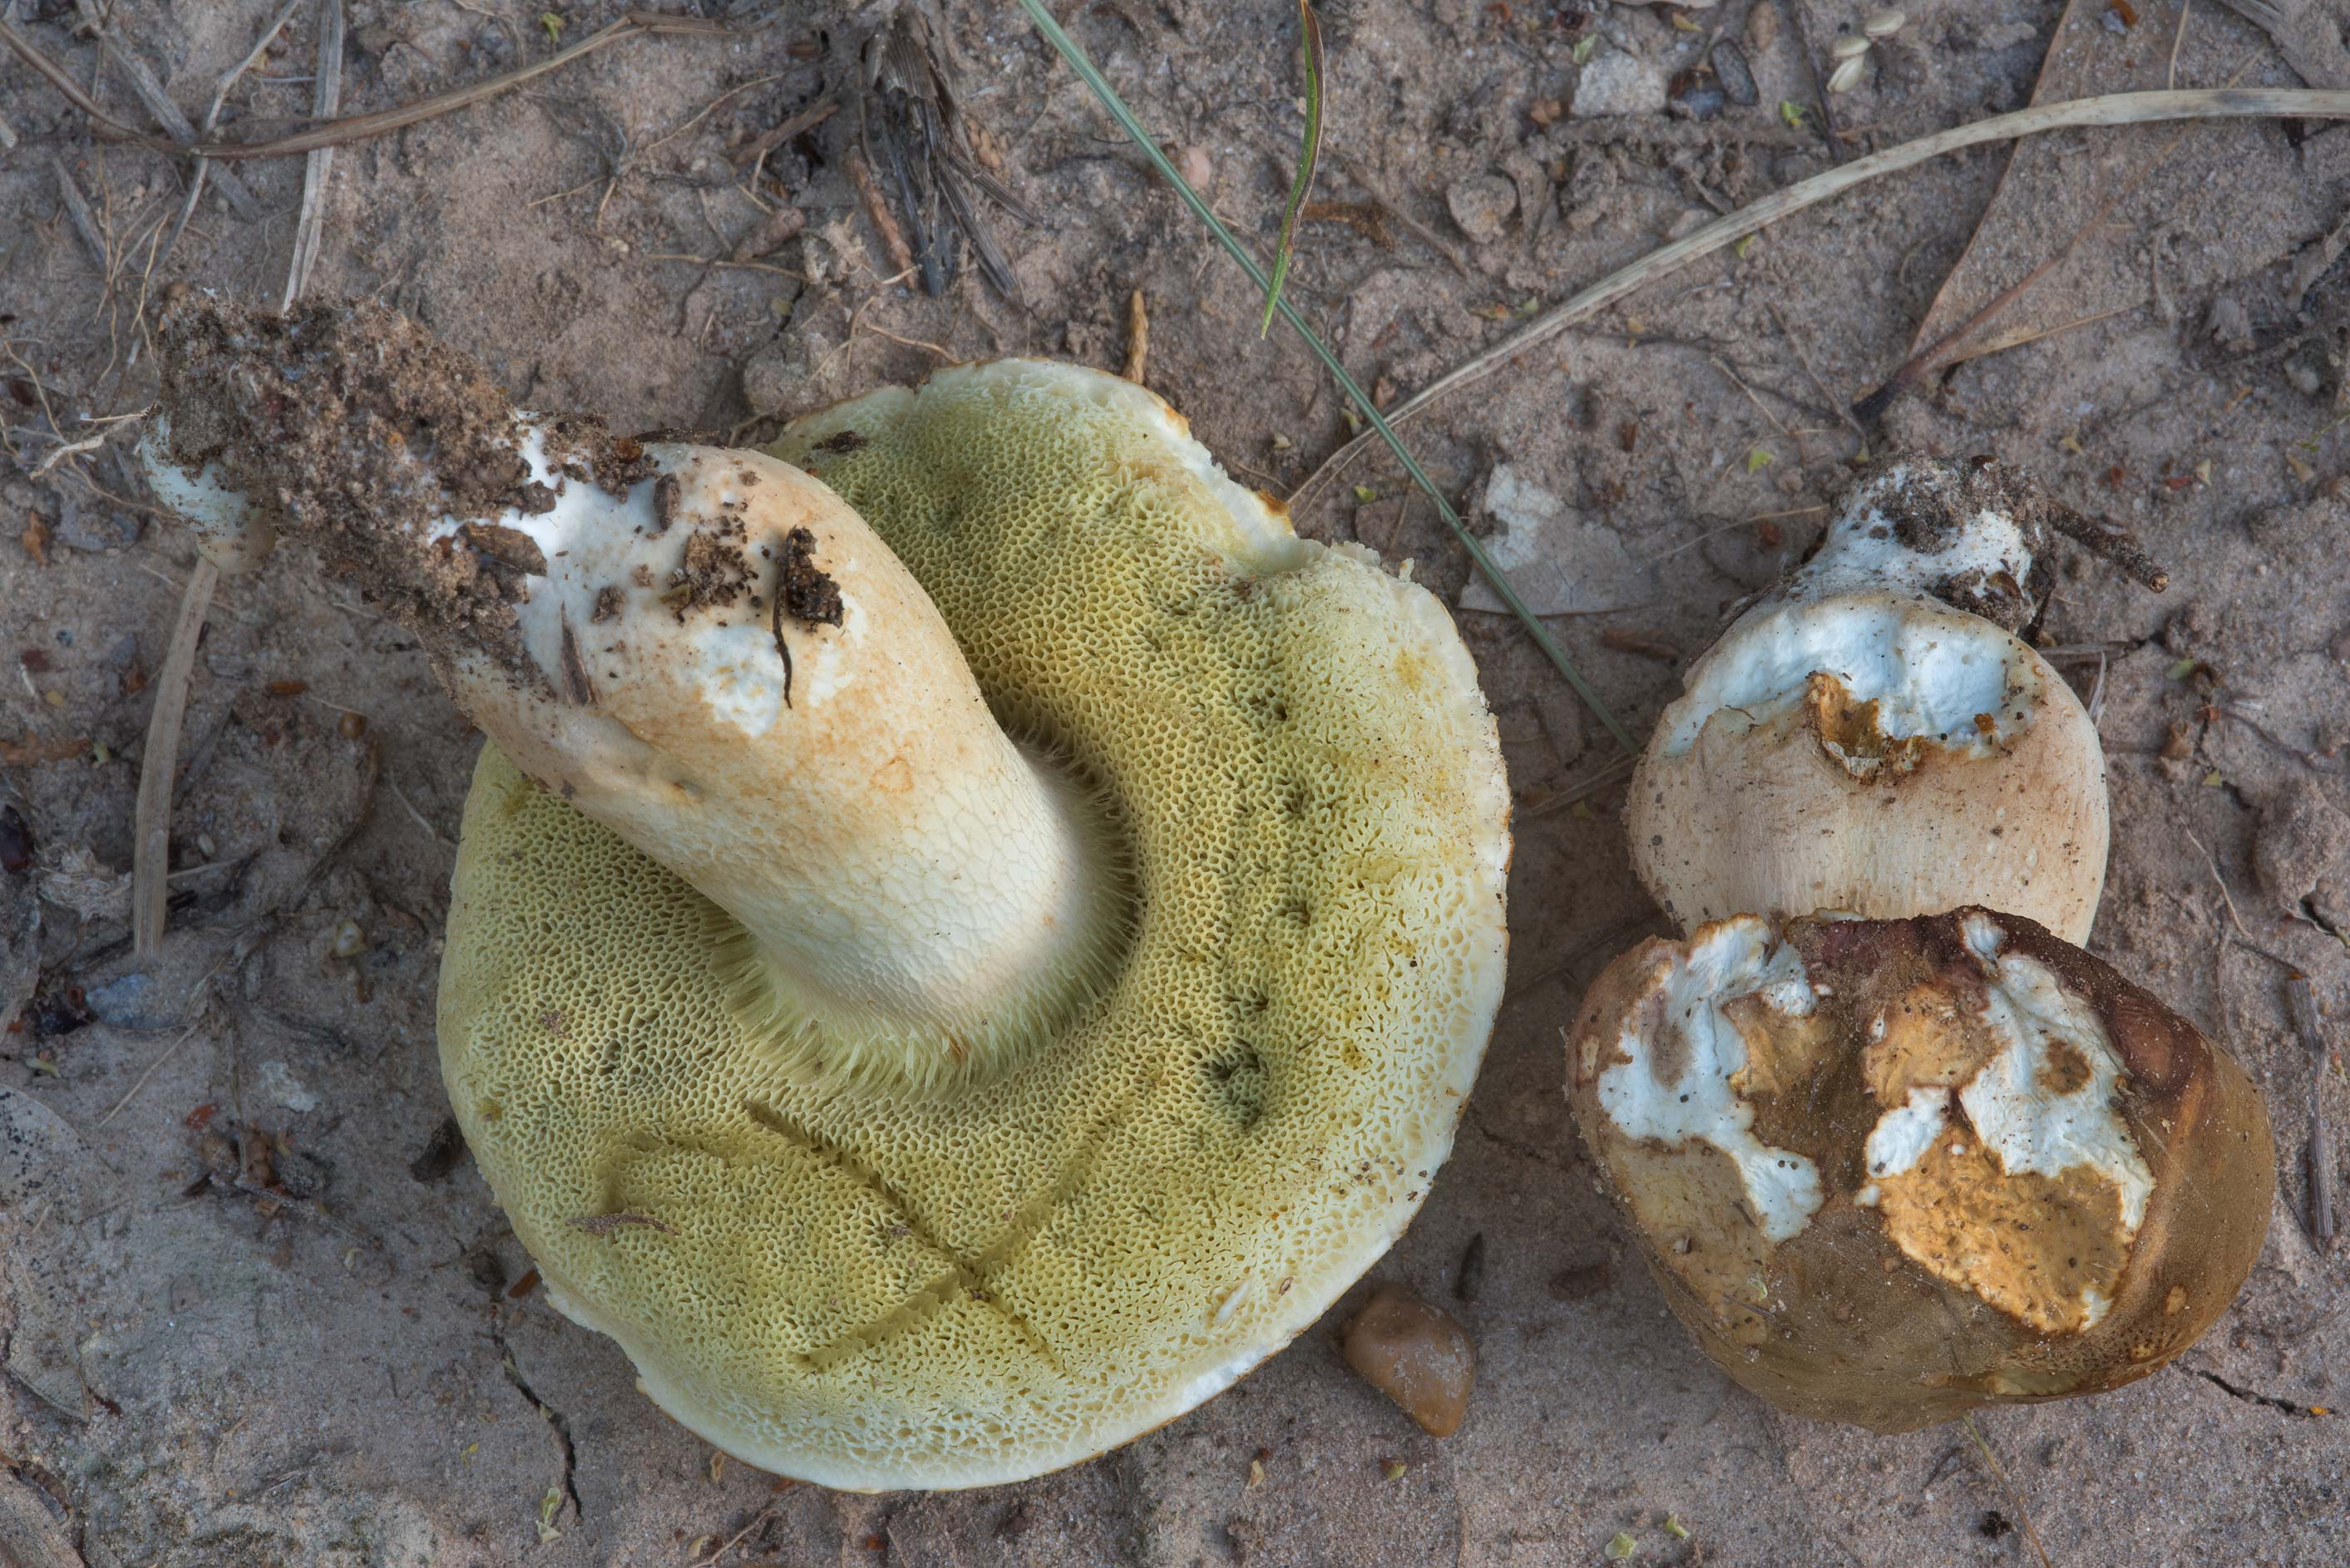 Porcini bolete mushrooms (Boletus edulis group) in Lick Creek Park. College Station, Texas